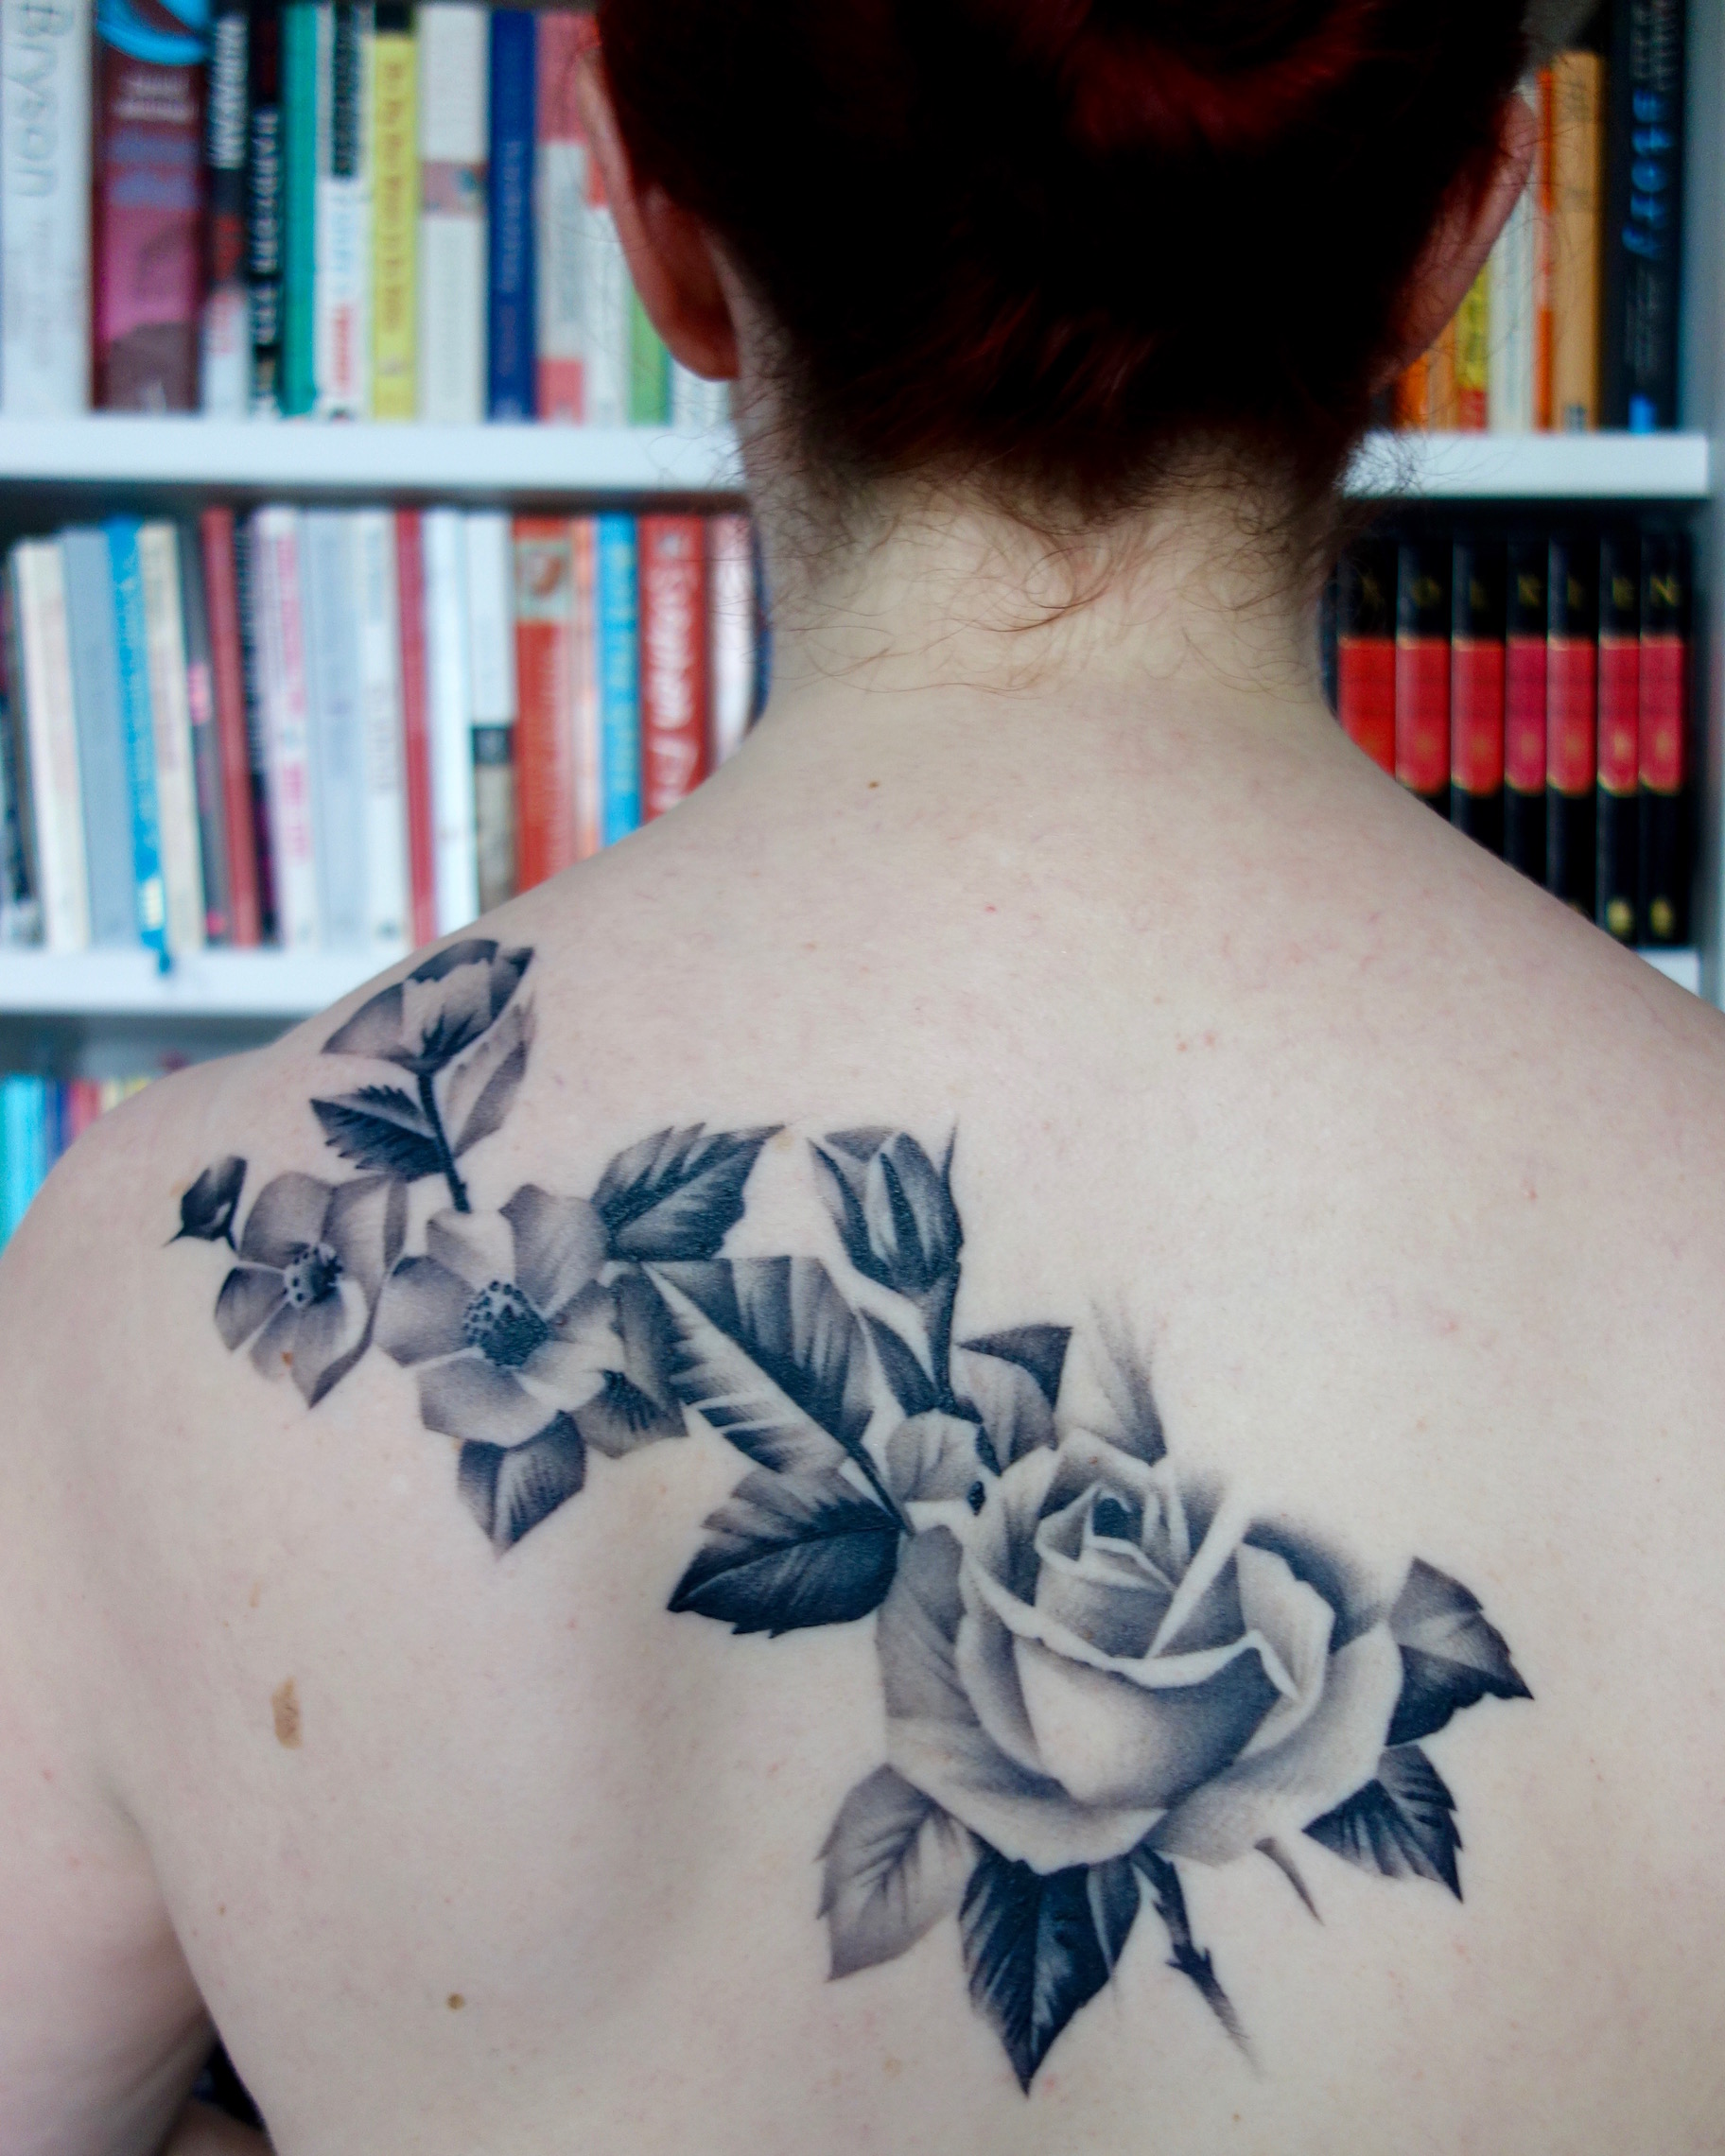 Part 1 of Lori's tattoo. Black & grey roses by Ricky Williams